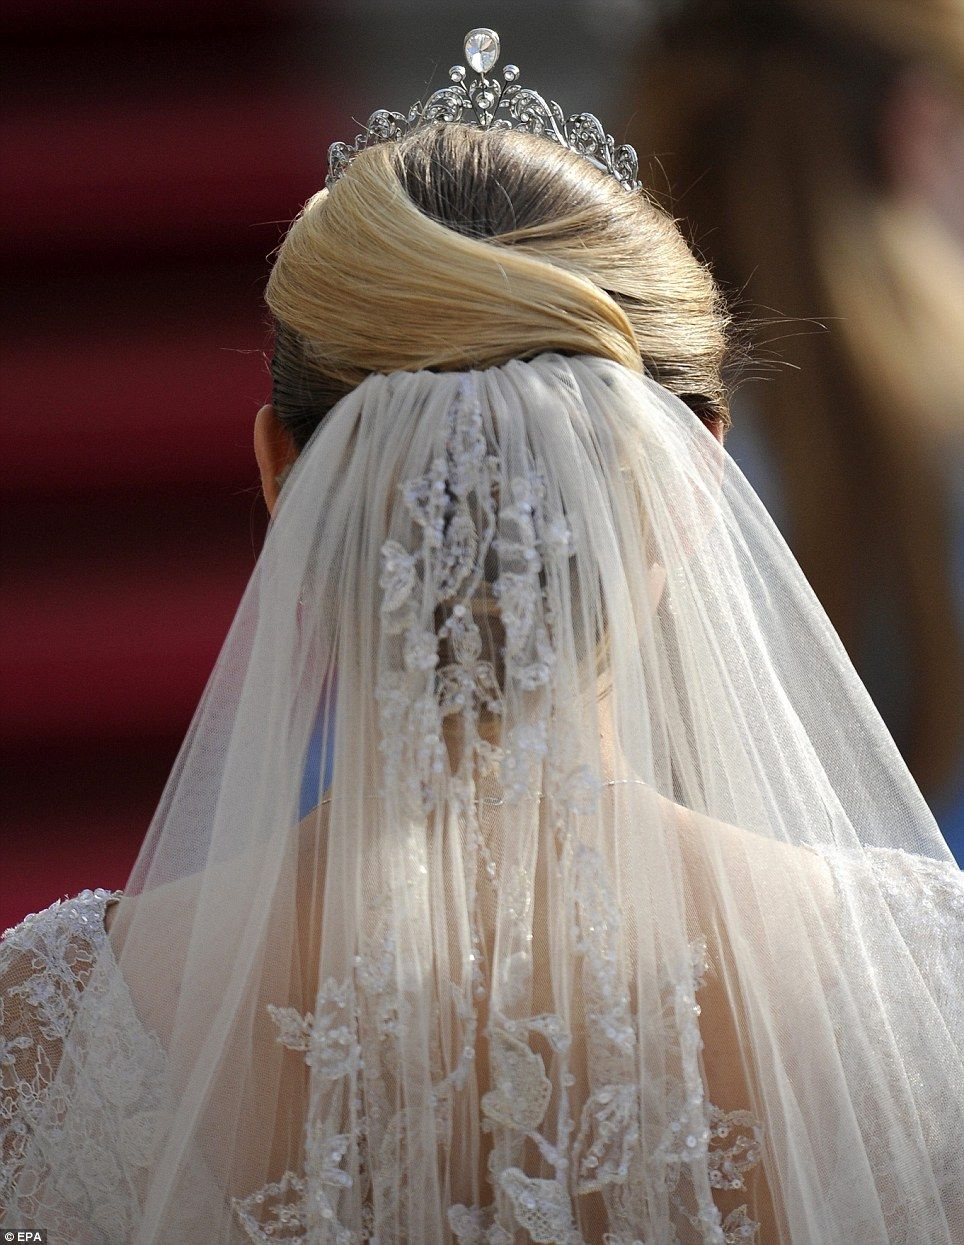 The 500,000 euro wedding: Belgian countess shimmers in breathtaking ...